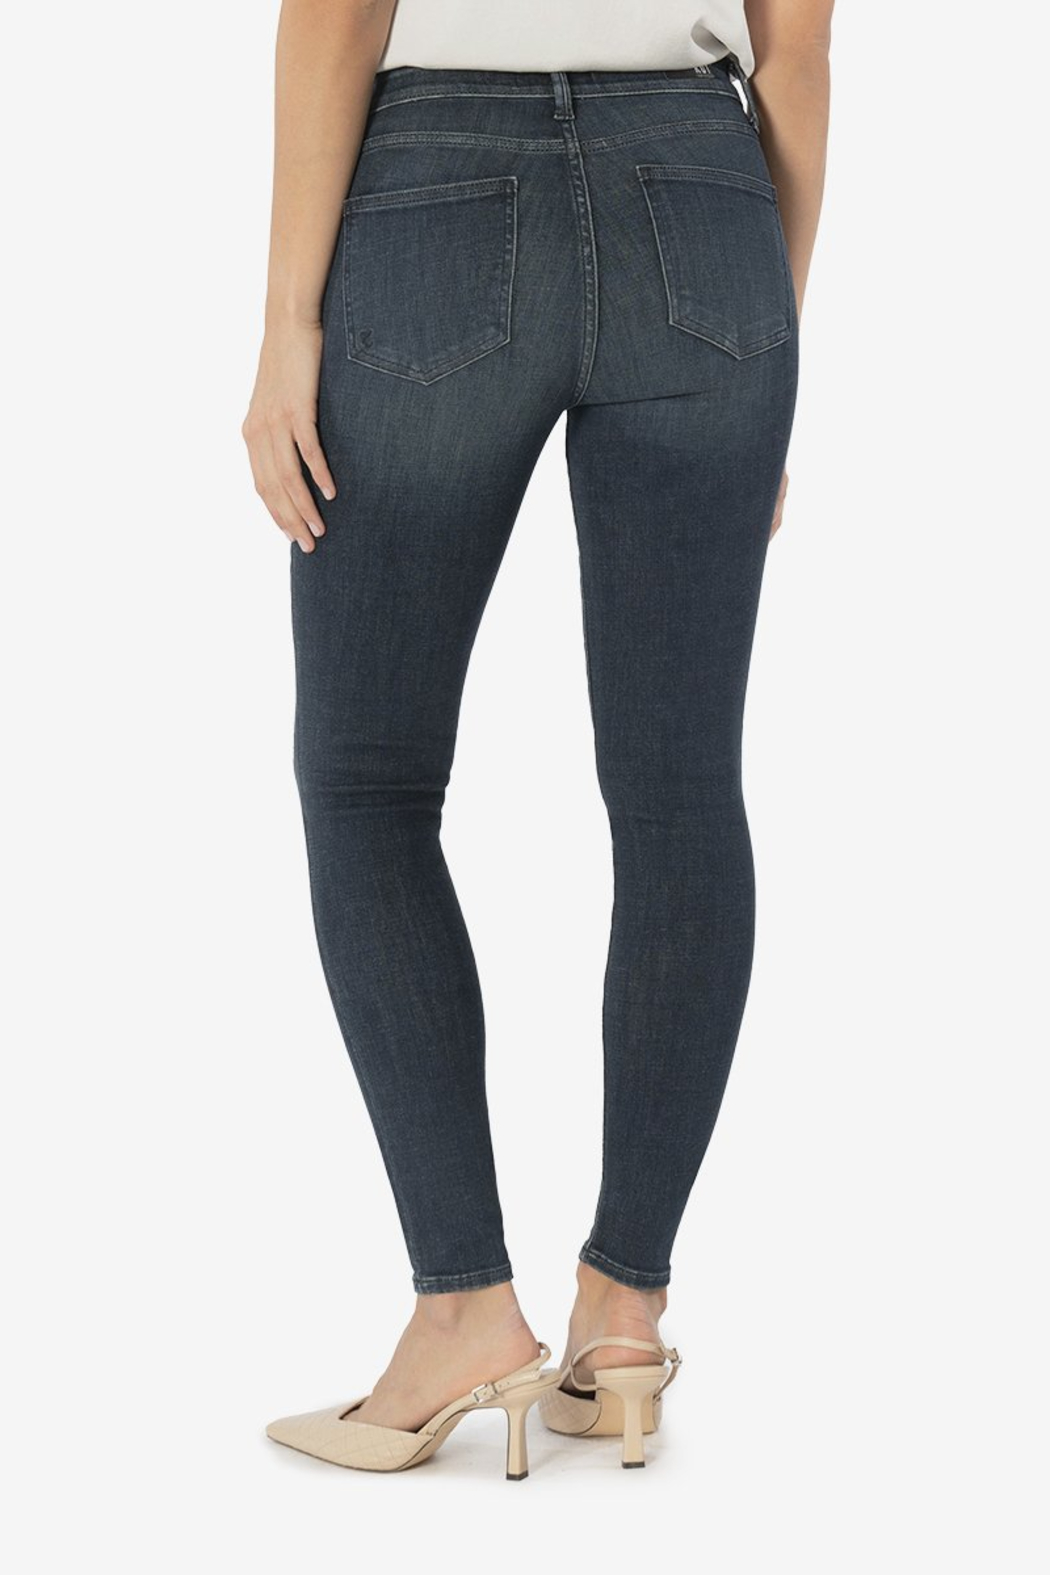 Kut from the Kloth Mia Toothpick Skinny - Side Cropped Image